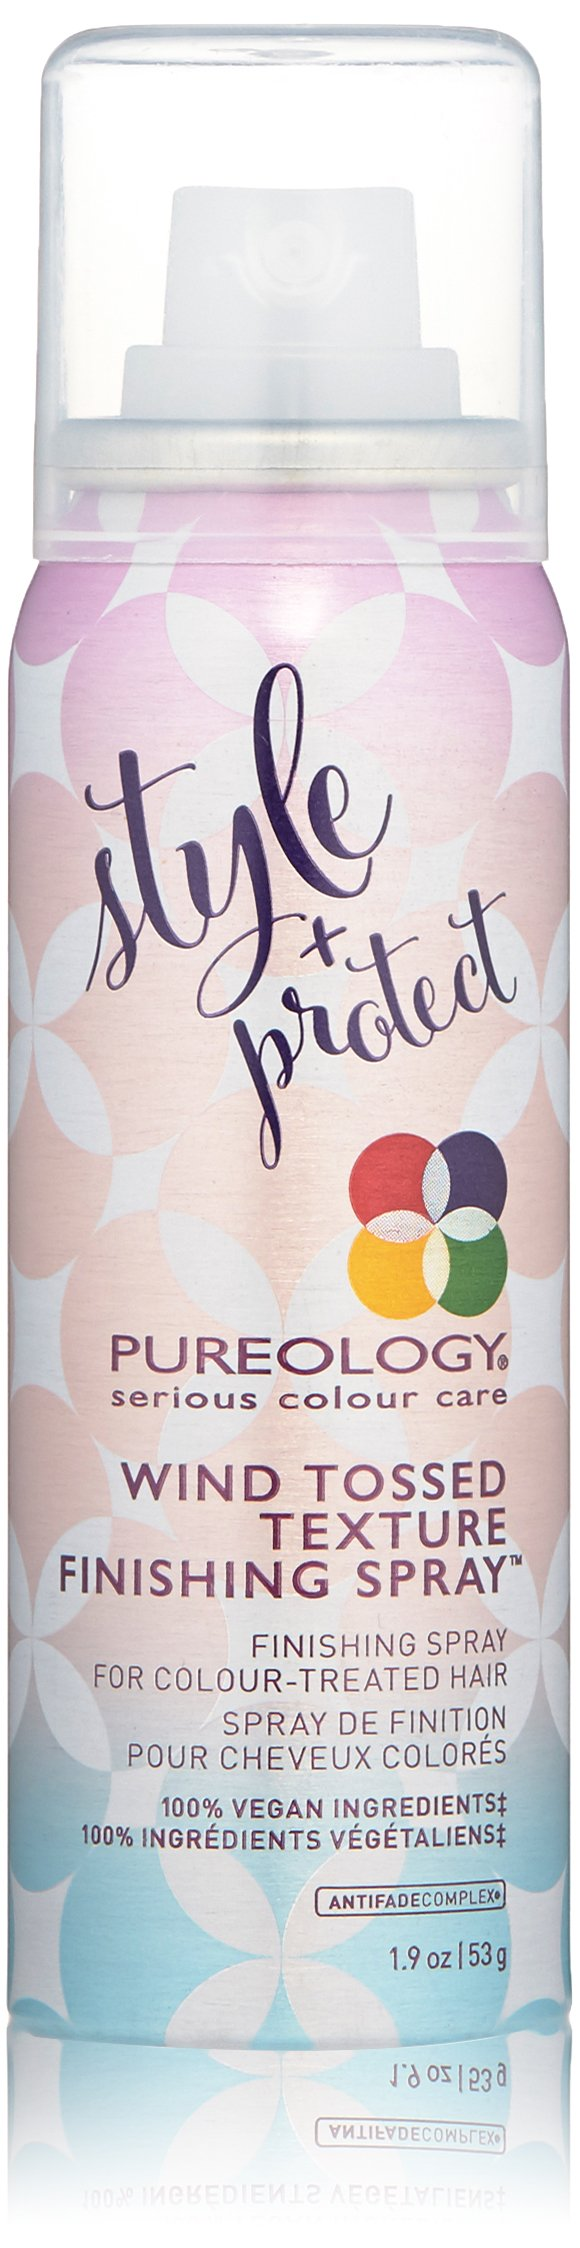 Pureology | Style + Protect Wind-Tossed Texture Finishing Spray | For Color-Treated Hair | Vegan